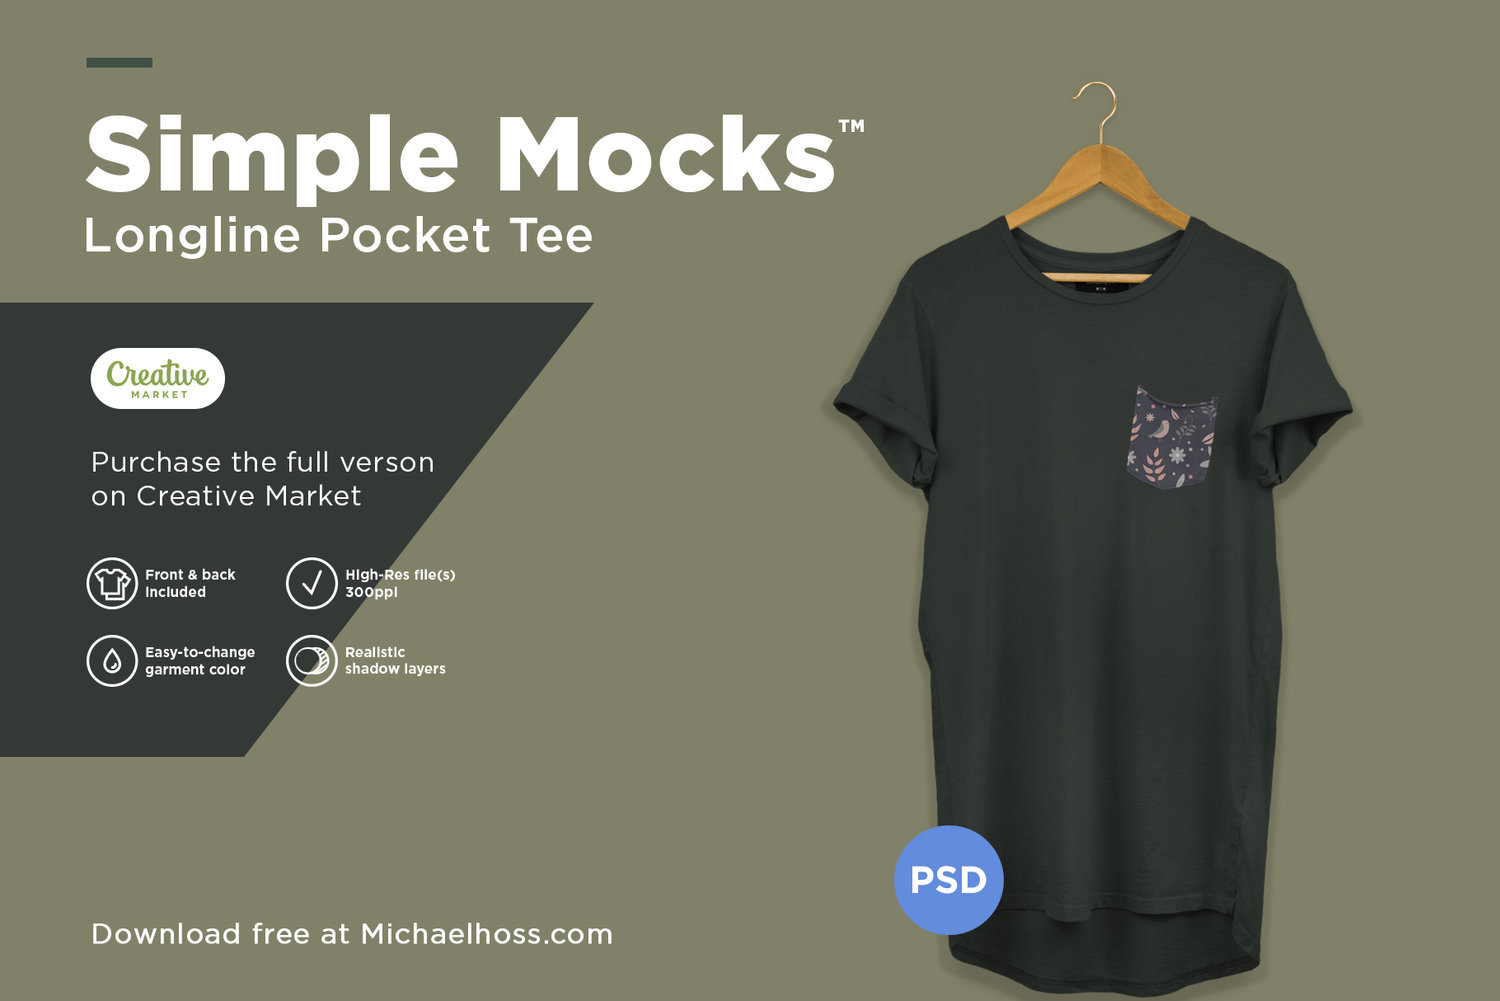 62+ Free Clothing & Accessories PSD Mockup templates and